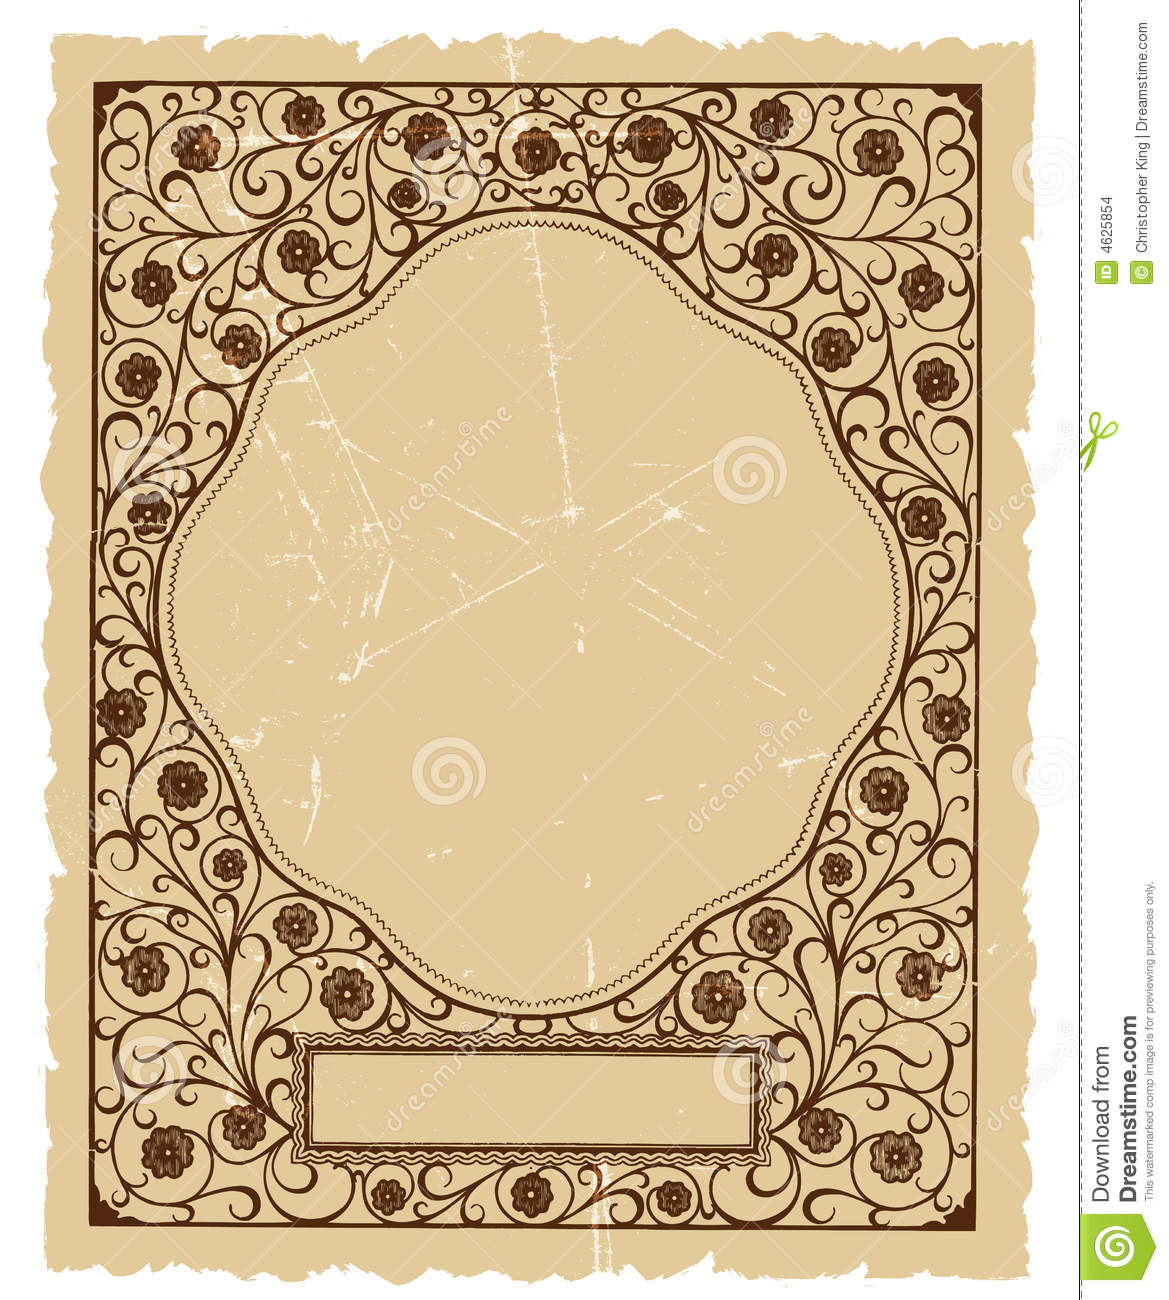 Vintage Floral Decorative Vector Background Design Stock ...